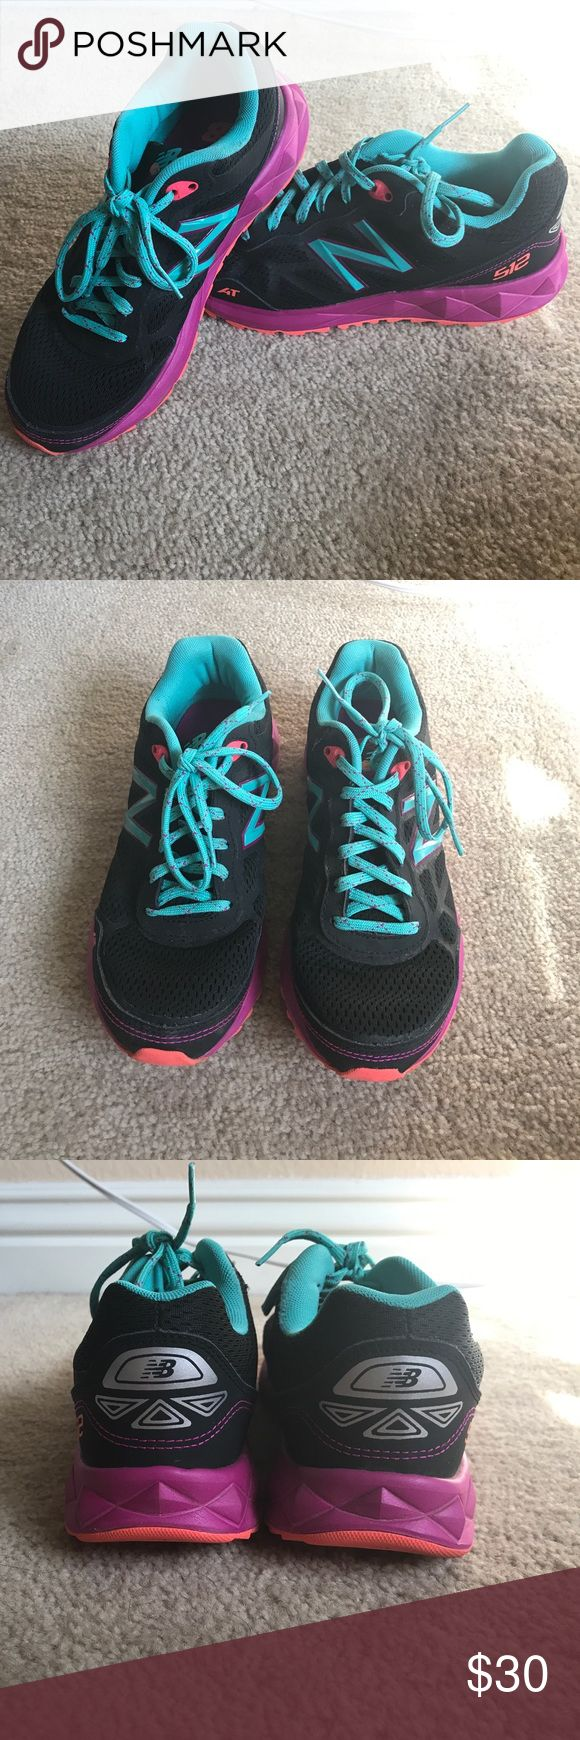 New Balance Trail Running Shoes New Balance trail running hoes are super comfy and provide great support for rough trails! New Balance Shoes Athletic Shoes